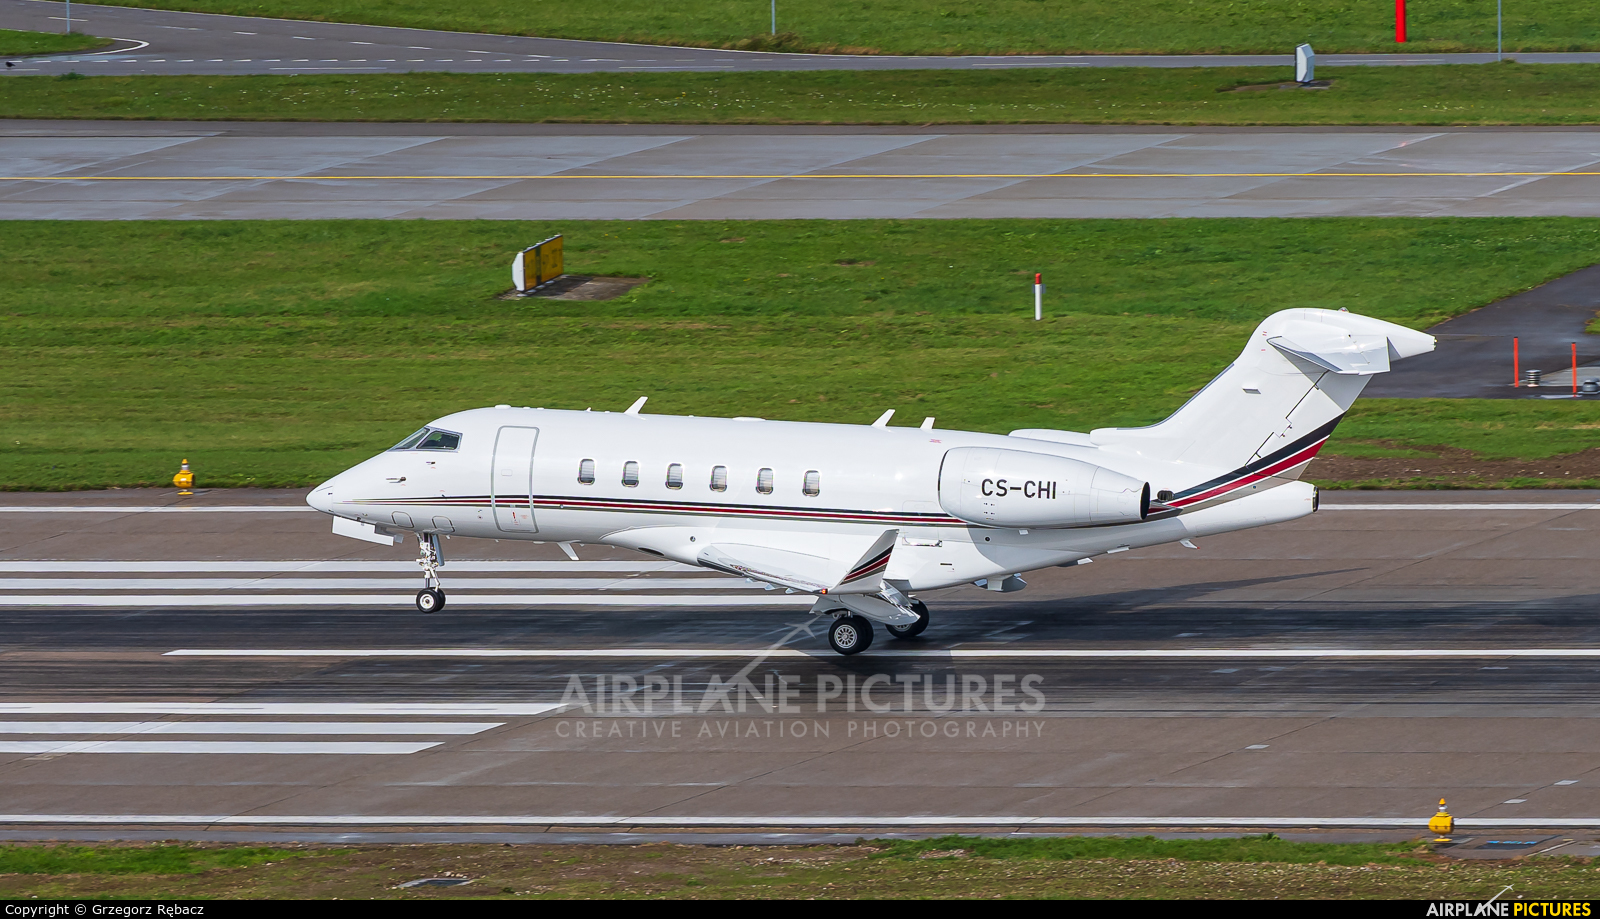 NetJets Europe (Portugal) CS-CHI aircraft at Zurich